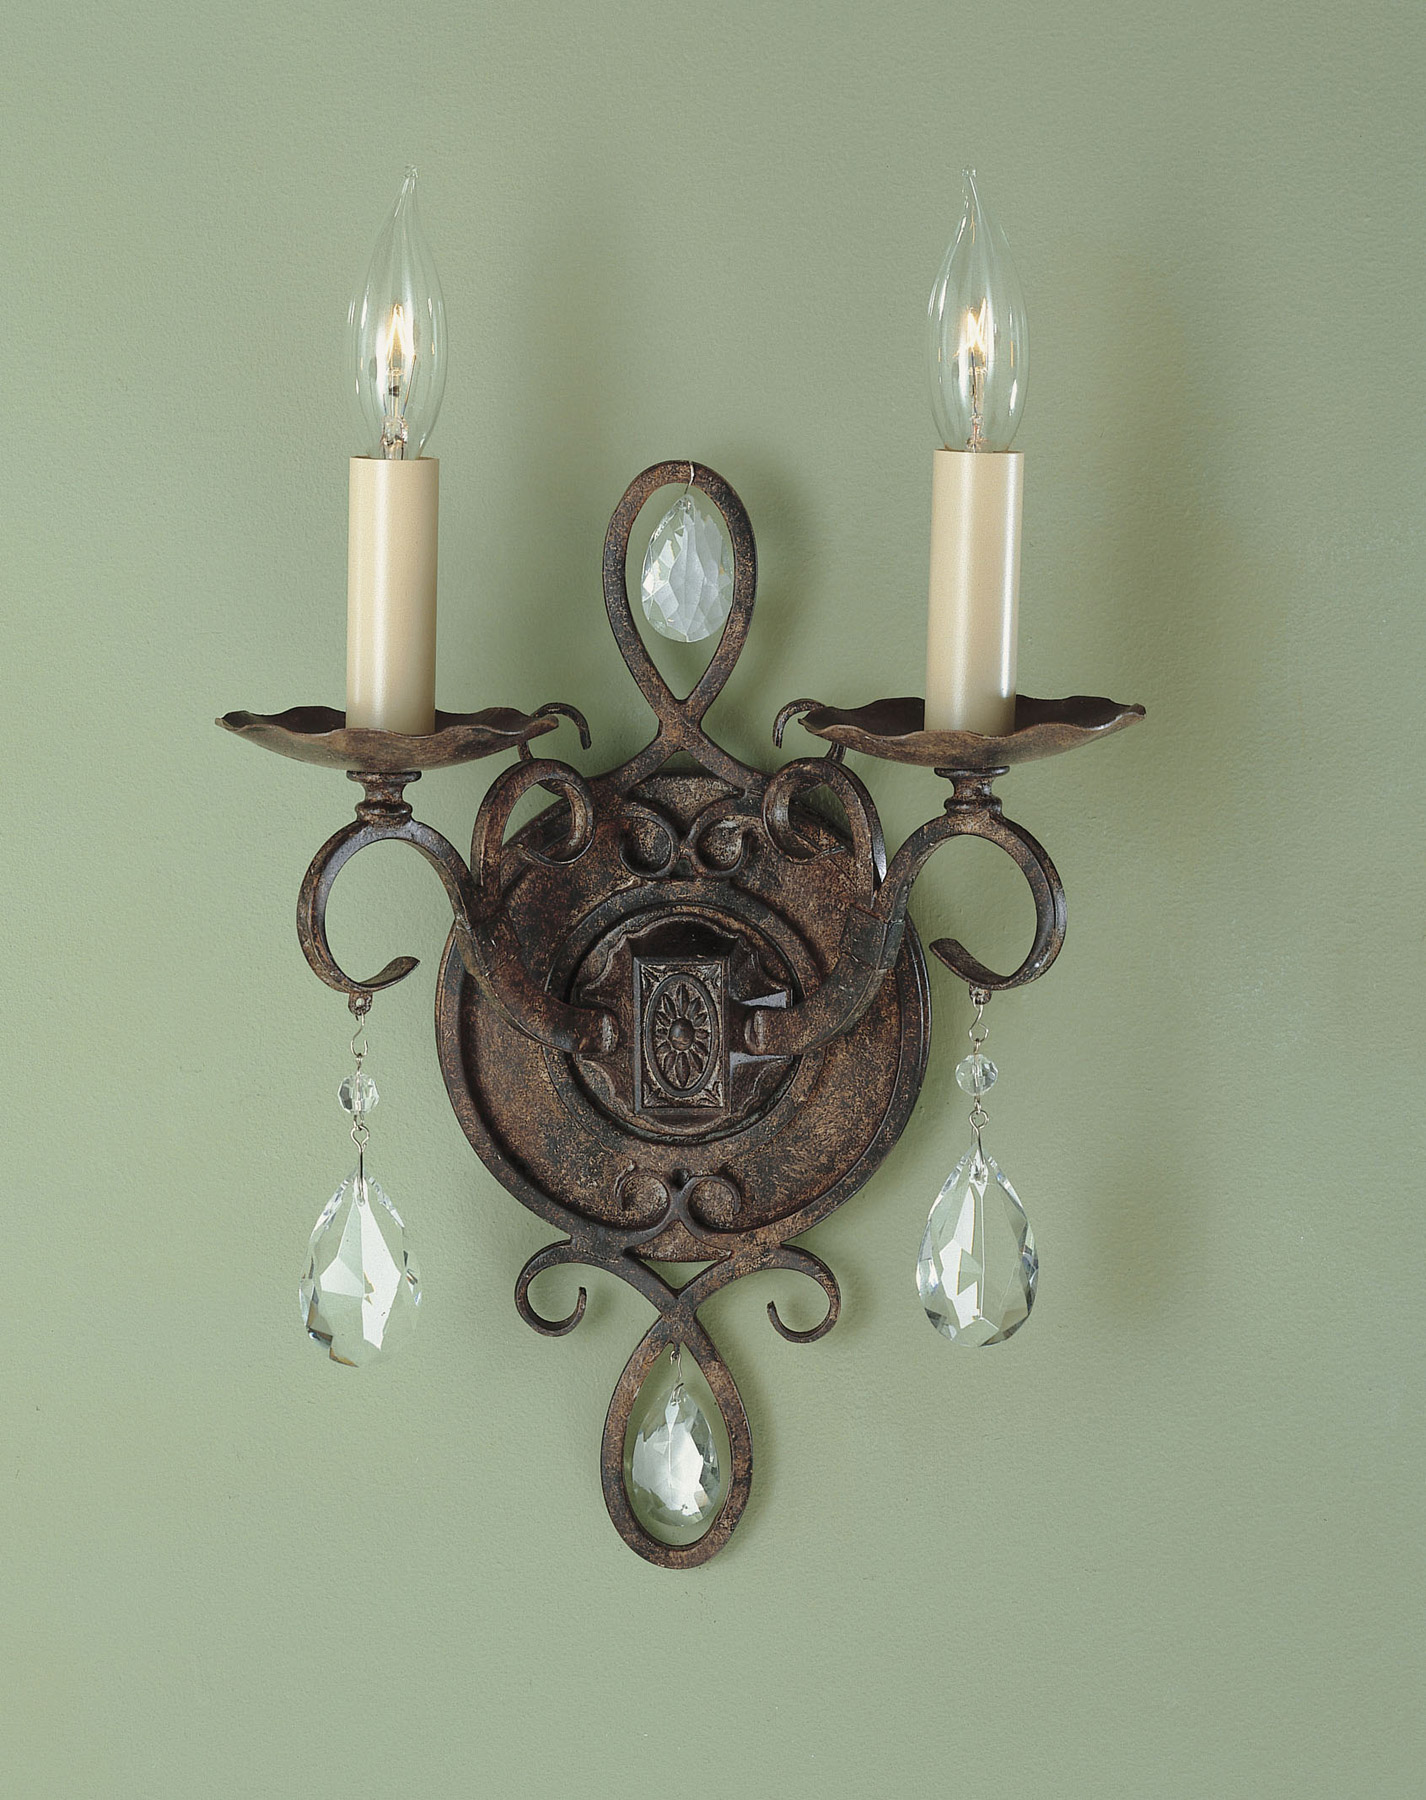 Wall Sconces Murray Feiss : Murray Feiss WB1227MBZ Crystal Chateau Wall Sconce